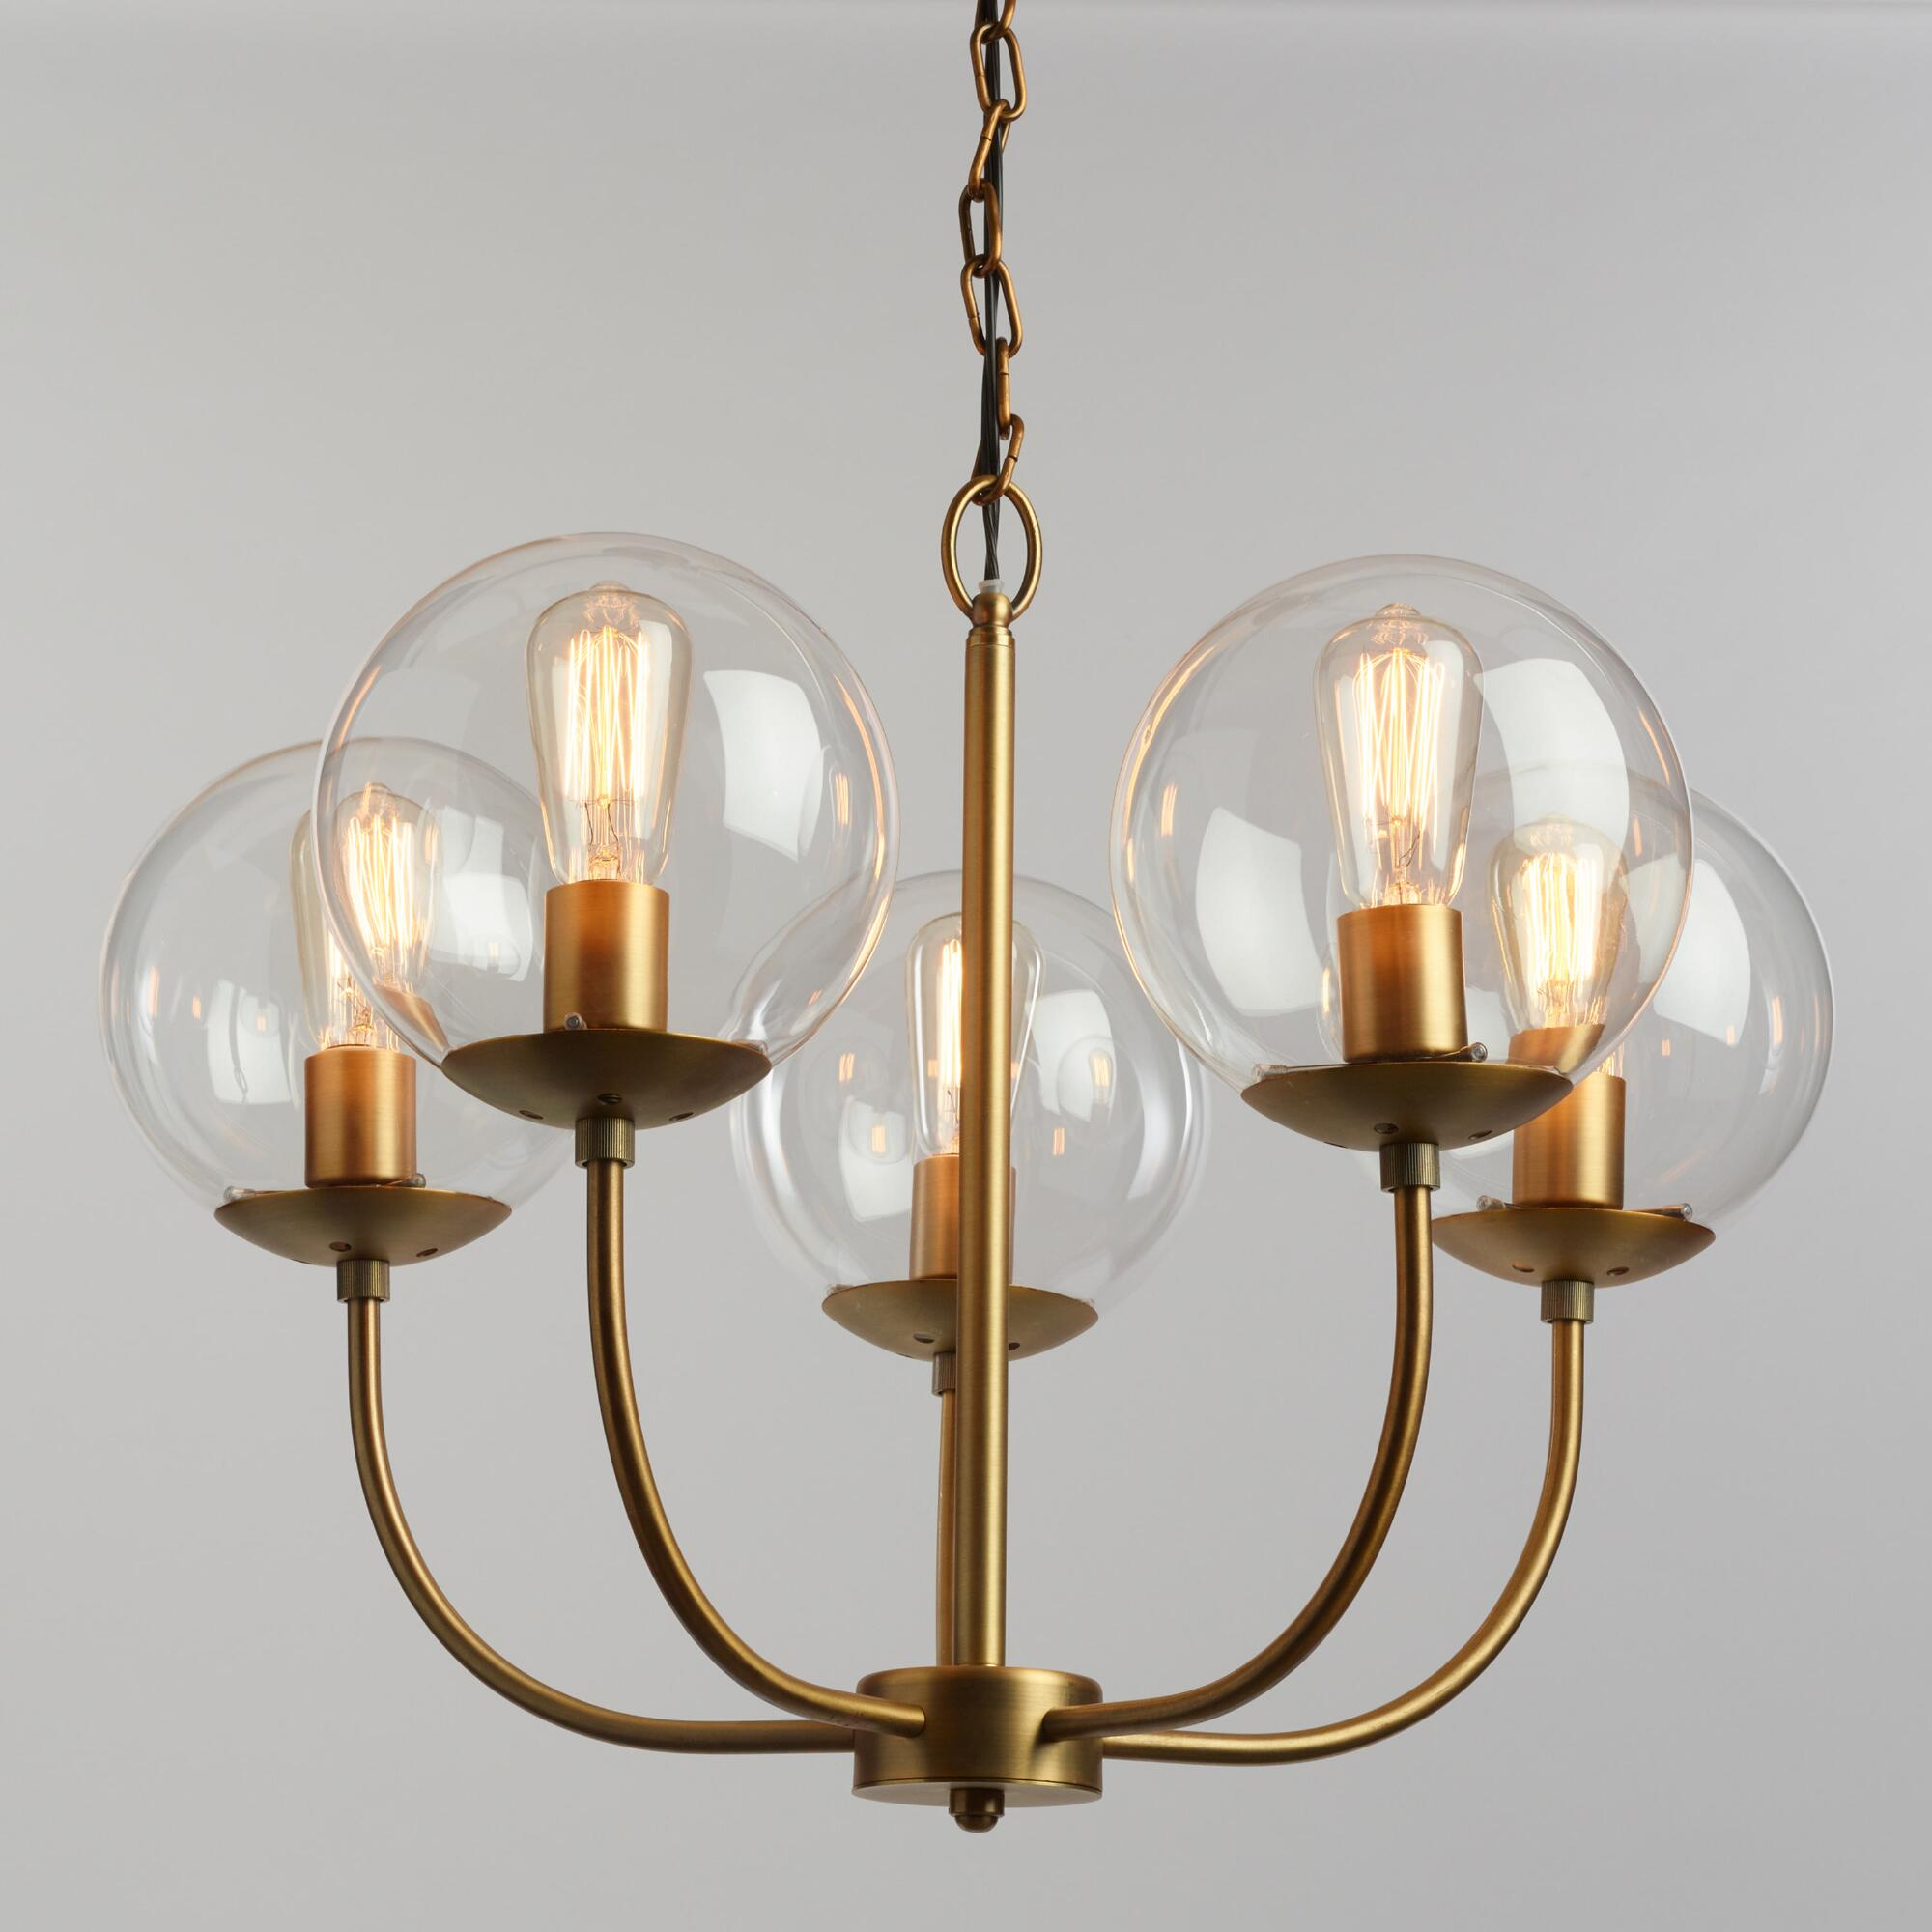 ul listed fixture lights pendant light ceiling amazon modern solutions sputnik chandelier dp com housen golden lighting